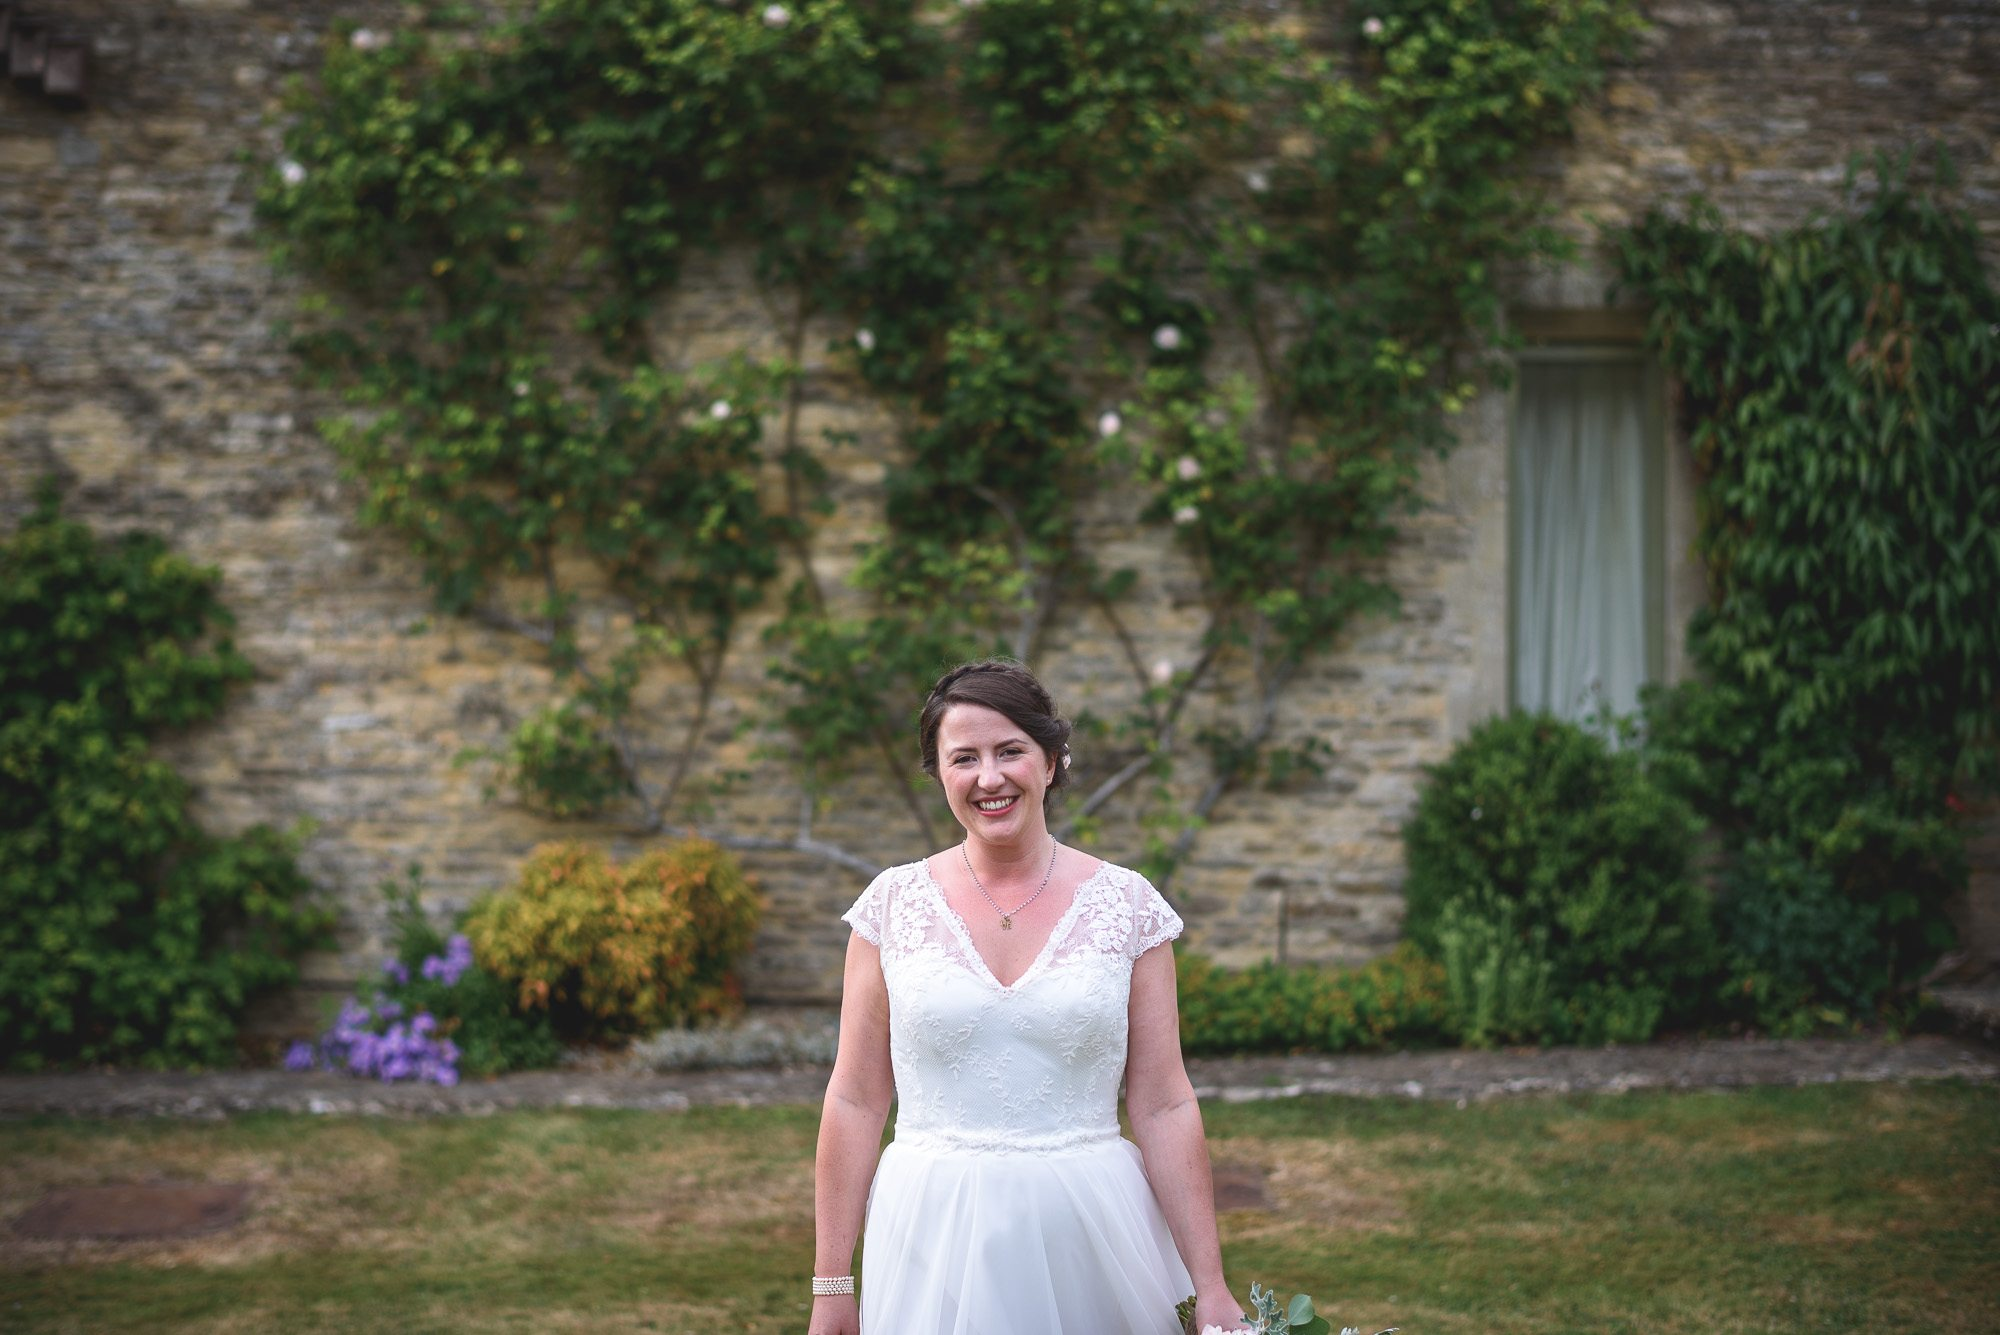 Jem and Andy - - The Rectory at Crudwell wedding photography (176 of 195)